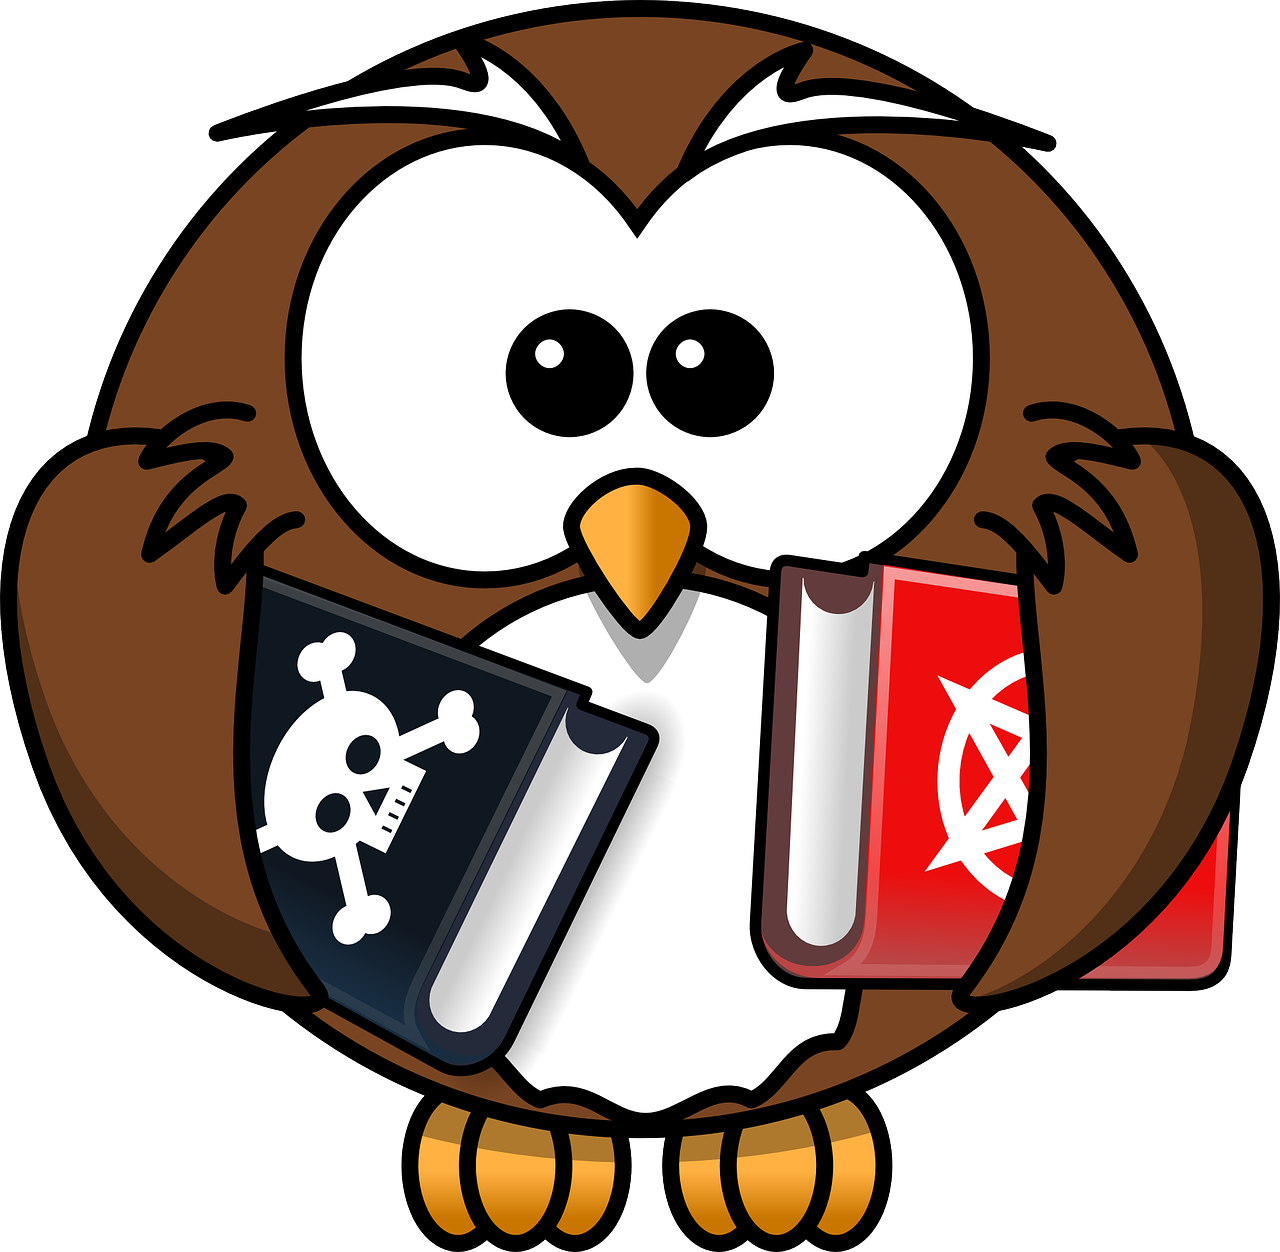 owl-158417_1280.png